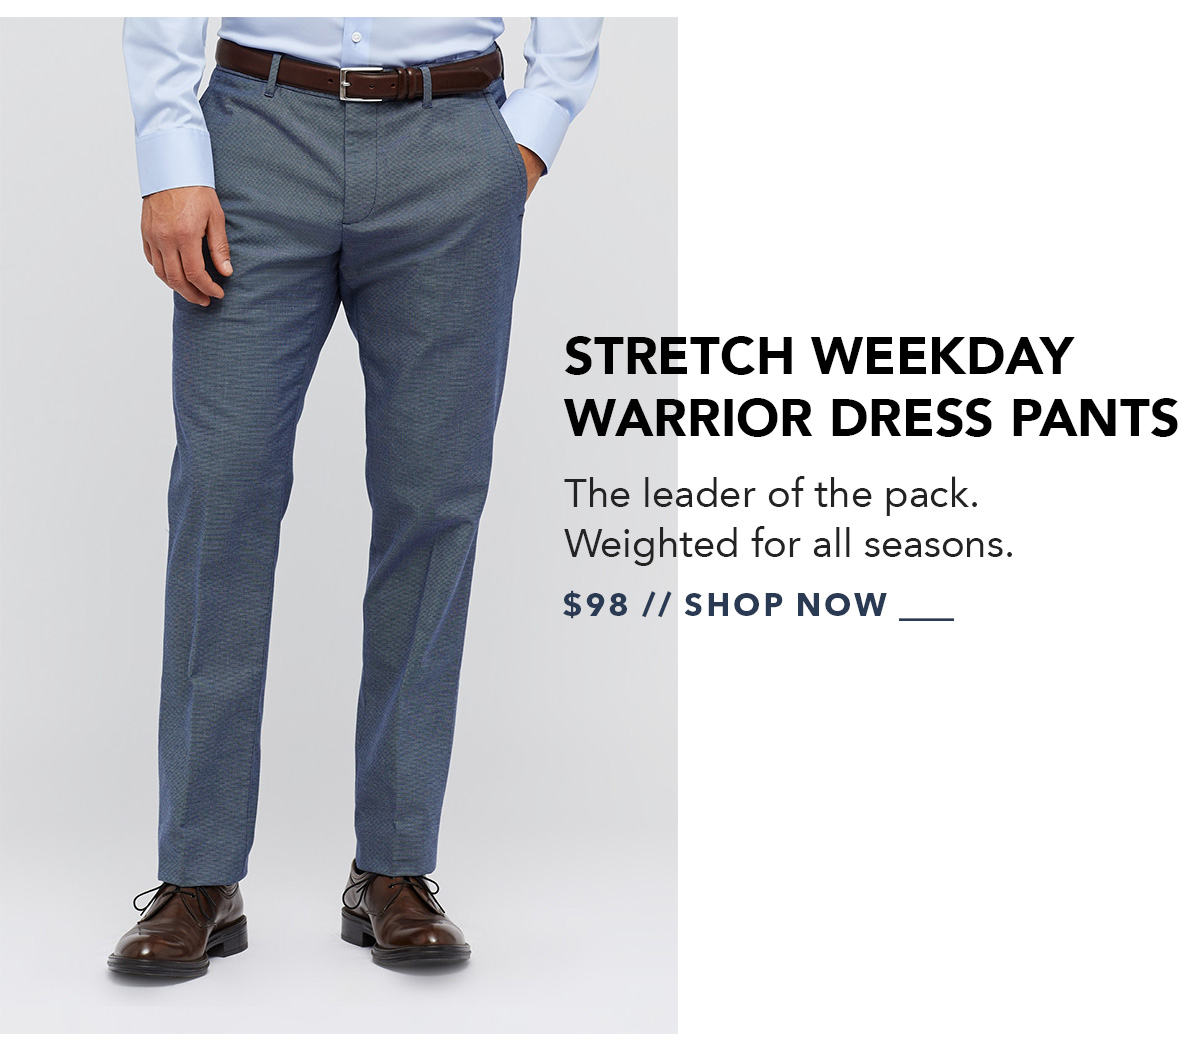 Stretch Weekday Warrior Dress Pants: The leader of the pack. Weighted for all seasons. Available in up to 4 fits and 21 colors.